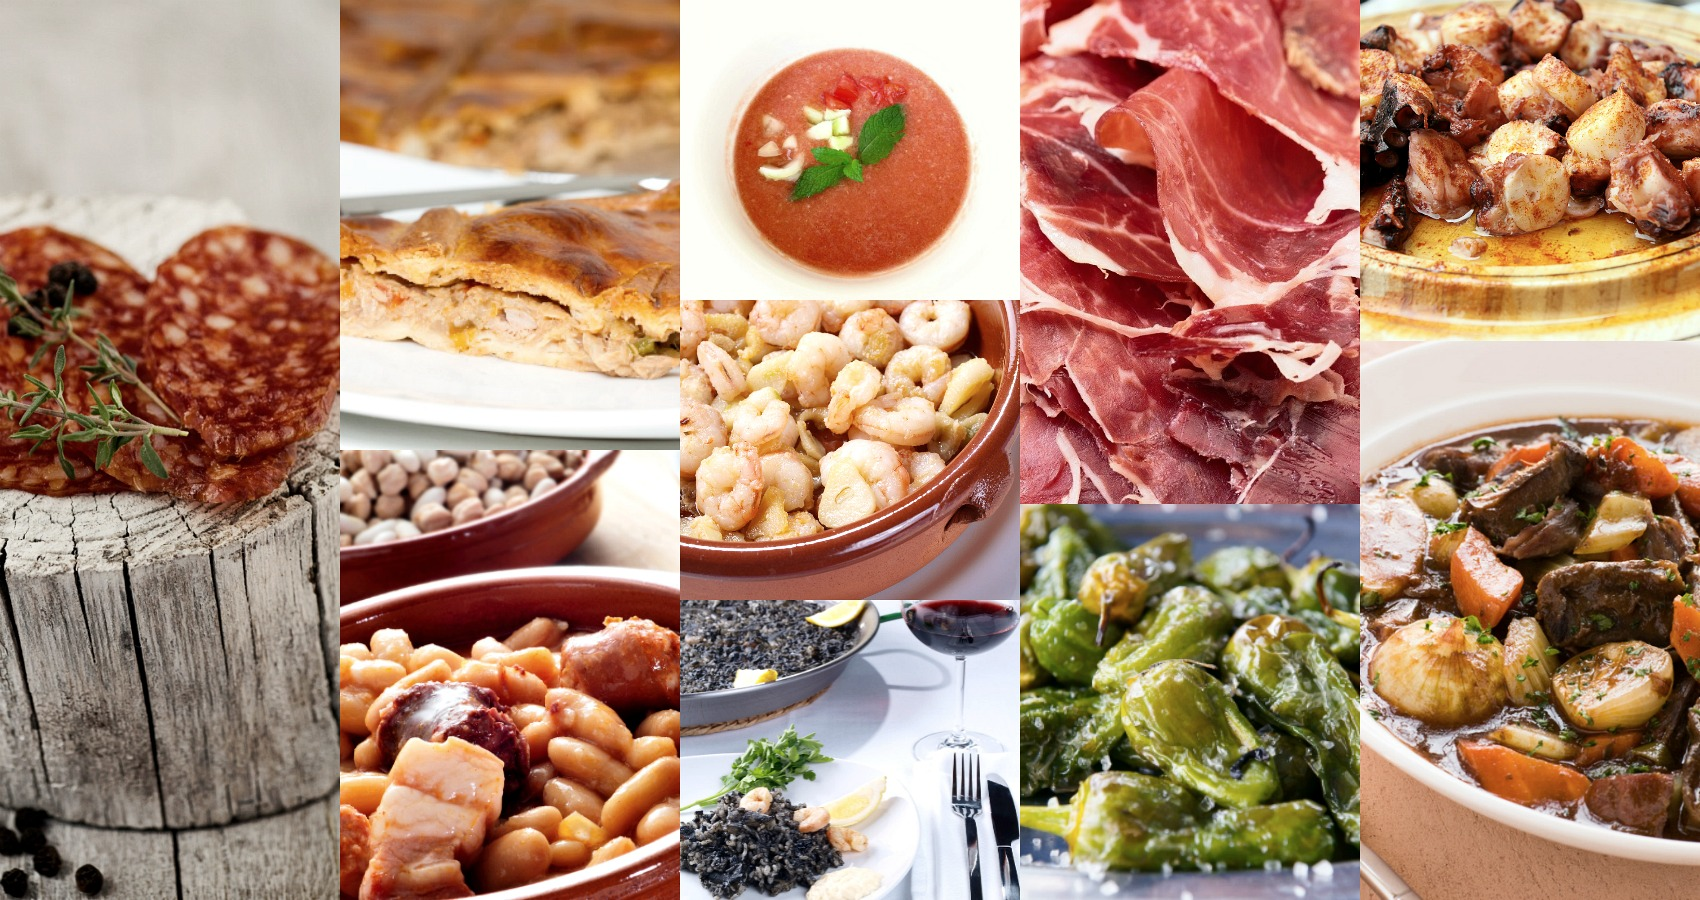 List Of Spanish Foods For Lunch